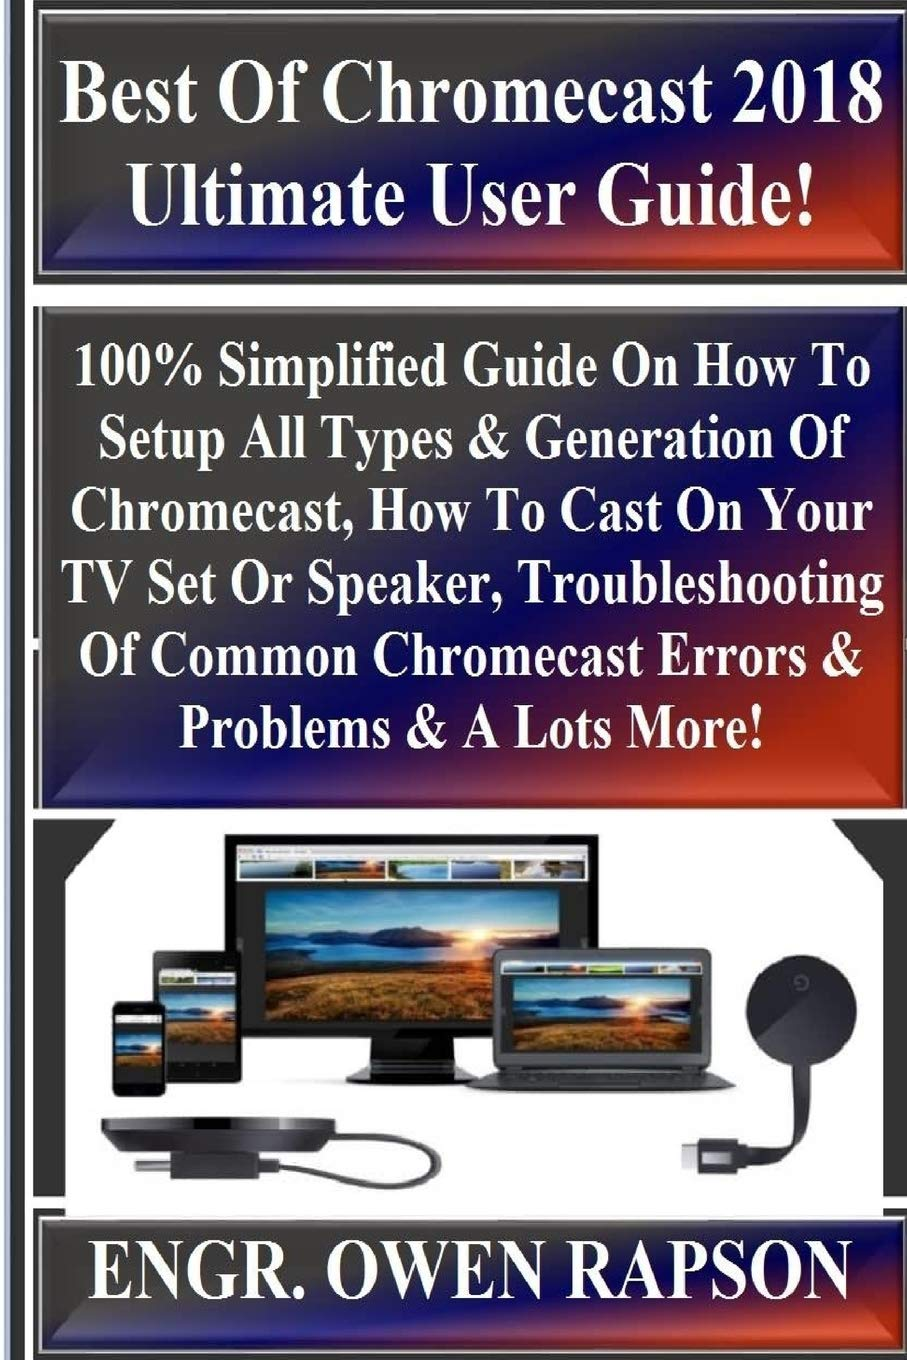 Best Of Chromecast 2018 Ultimate User Guide!: 100% Simplified Guide